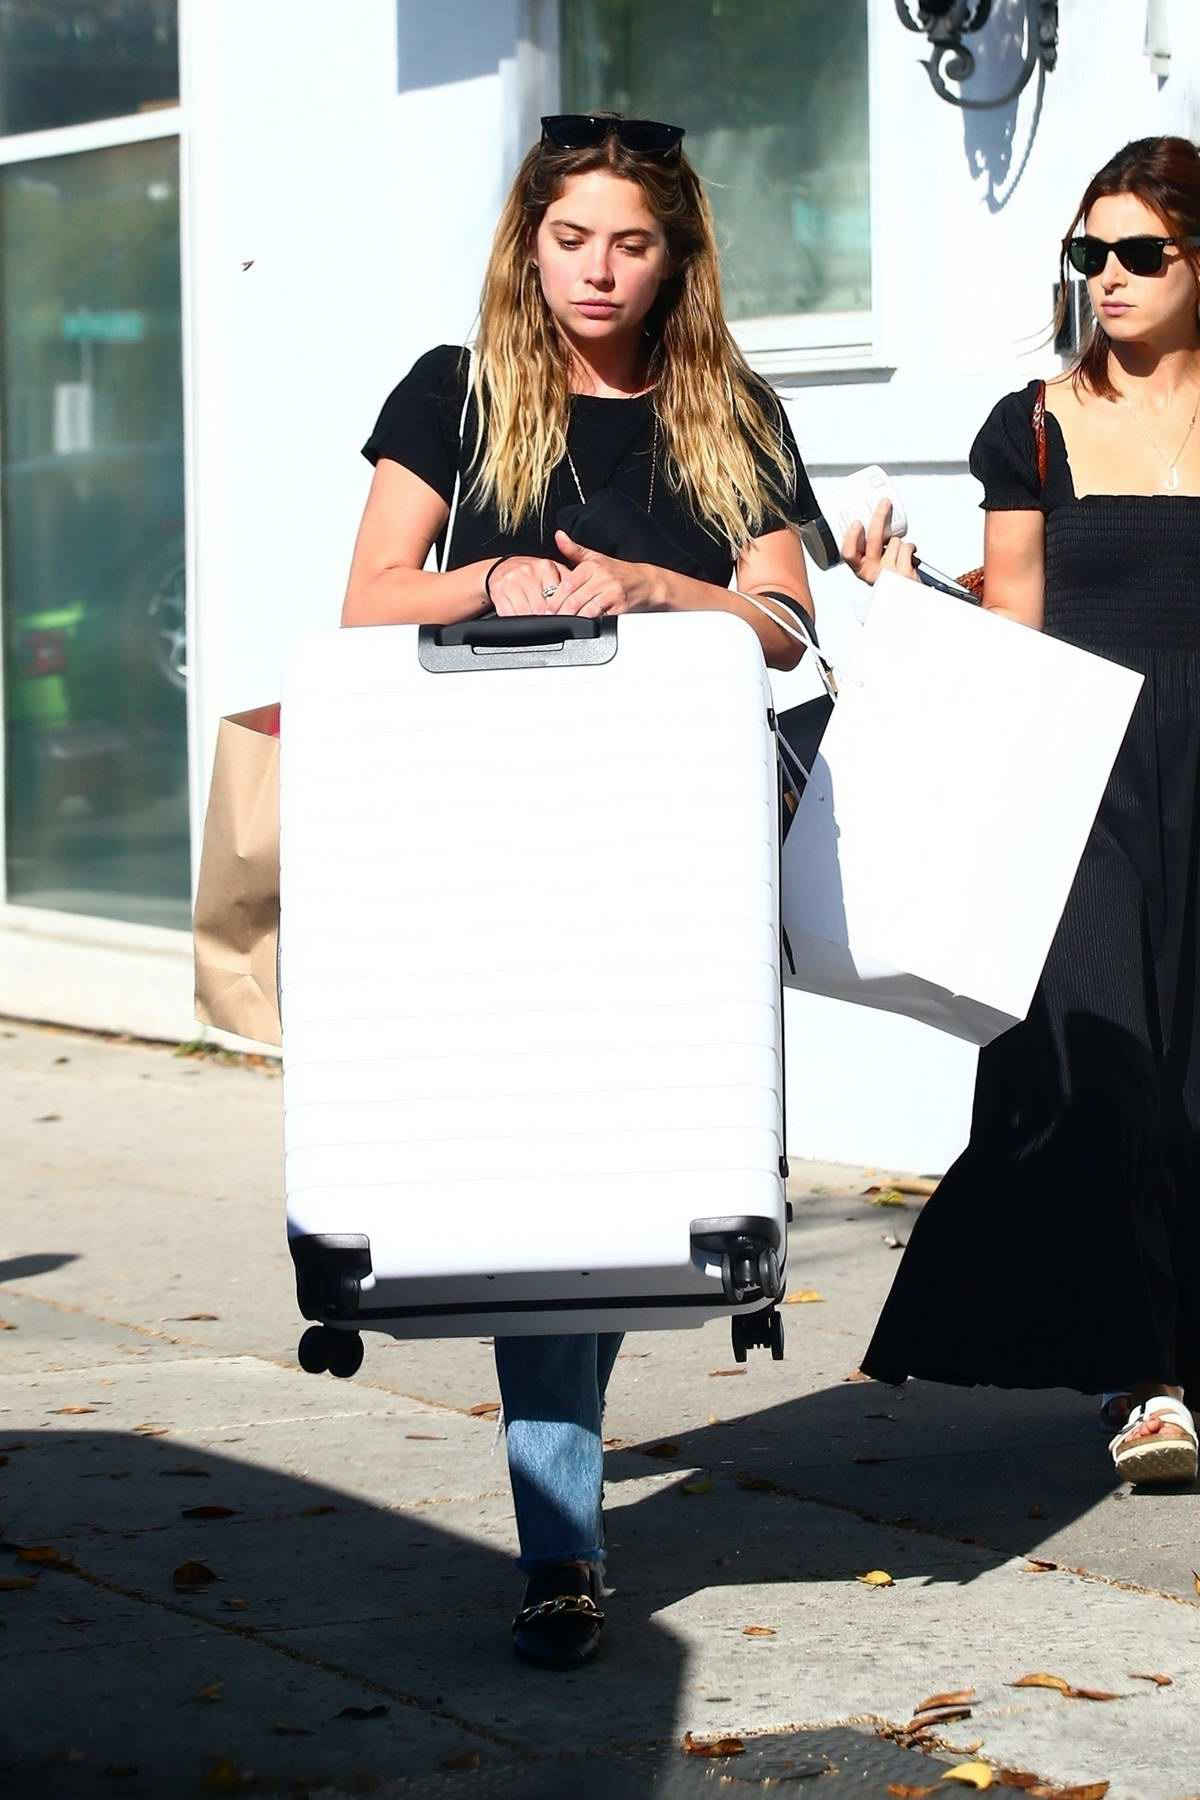 Ashley Benson steps out for some shopping in Beverly Hills, Los Angeles